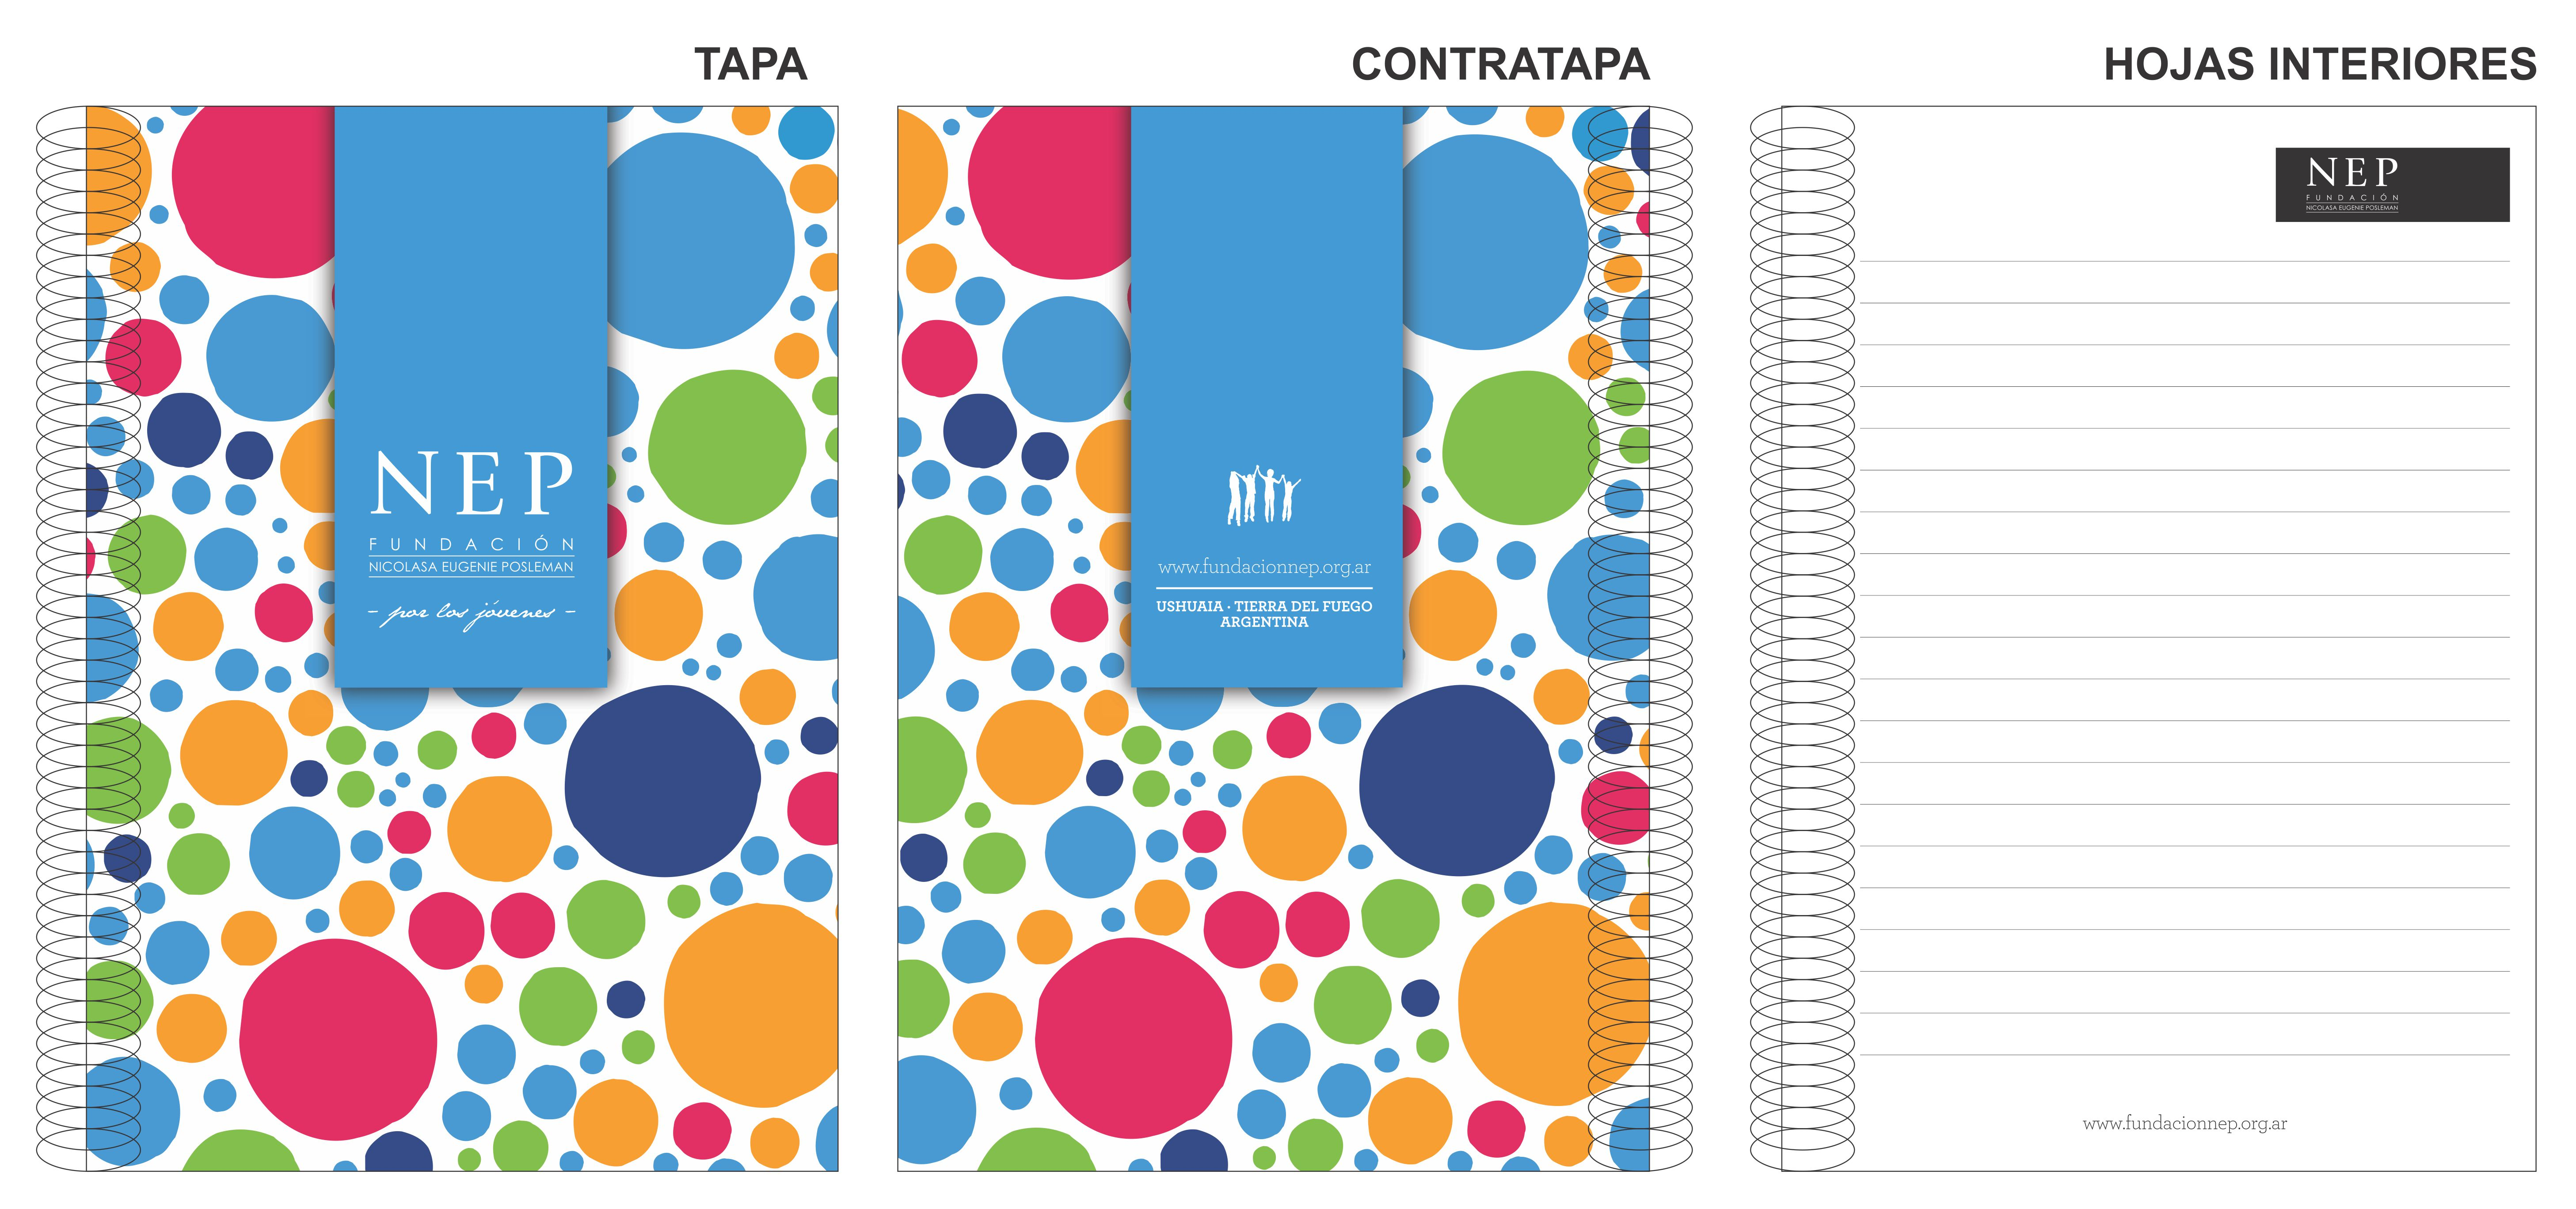 cuadernos by fundacion nep on 19 octubre 2011 leave a comment in